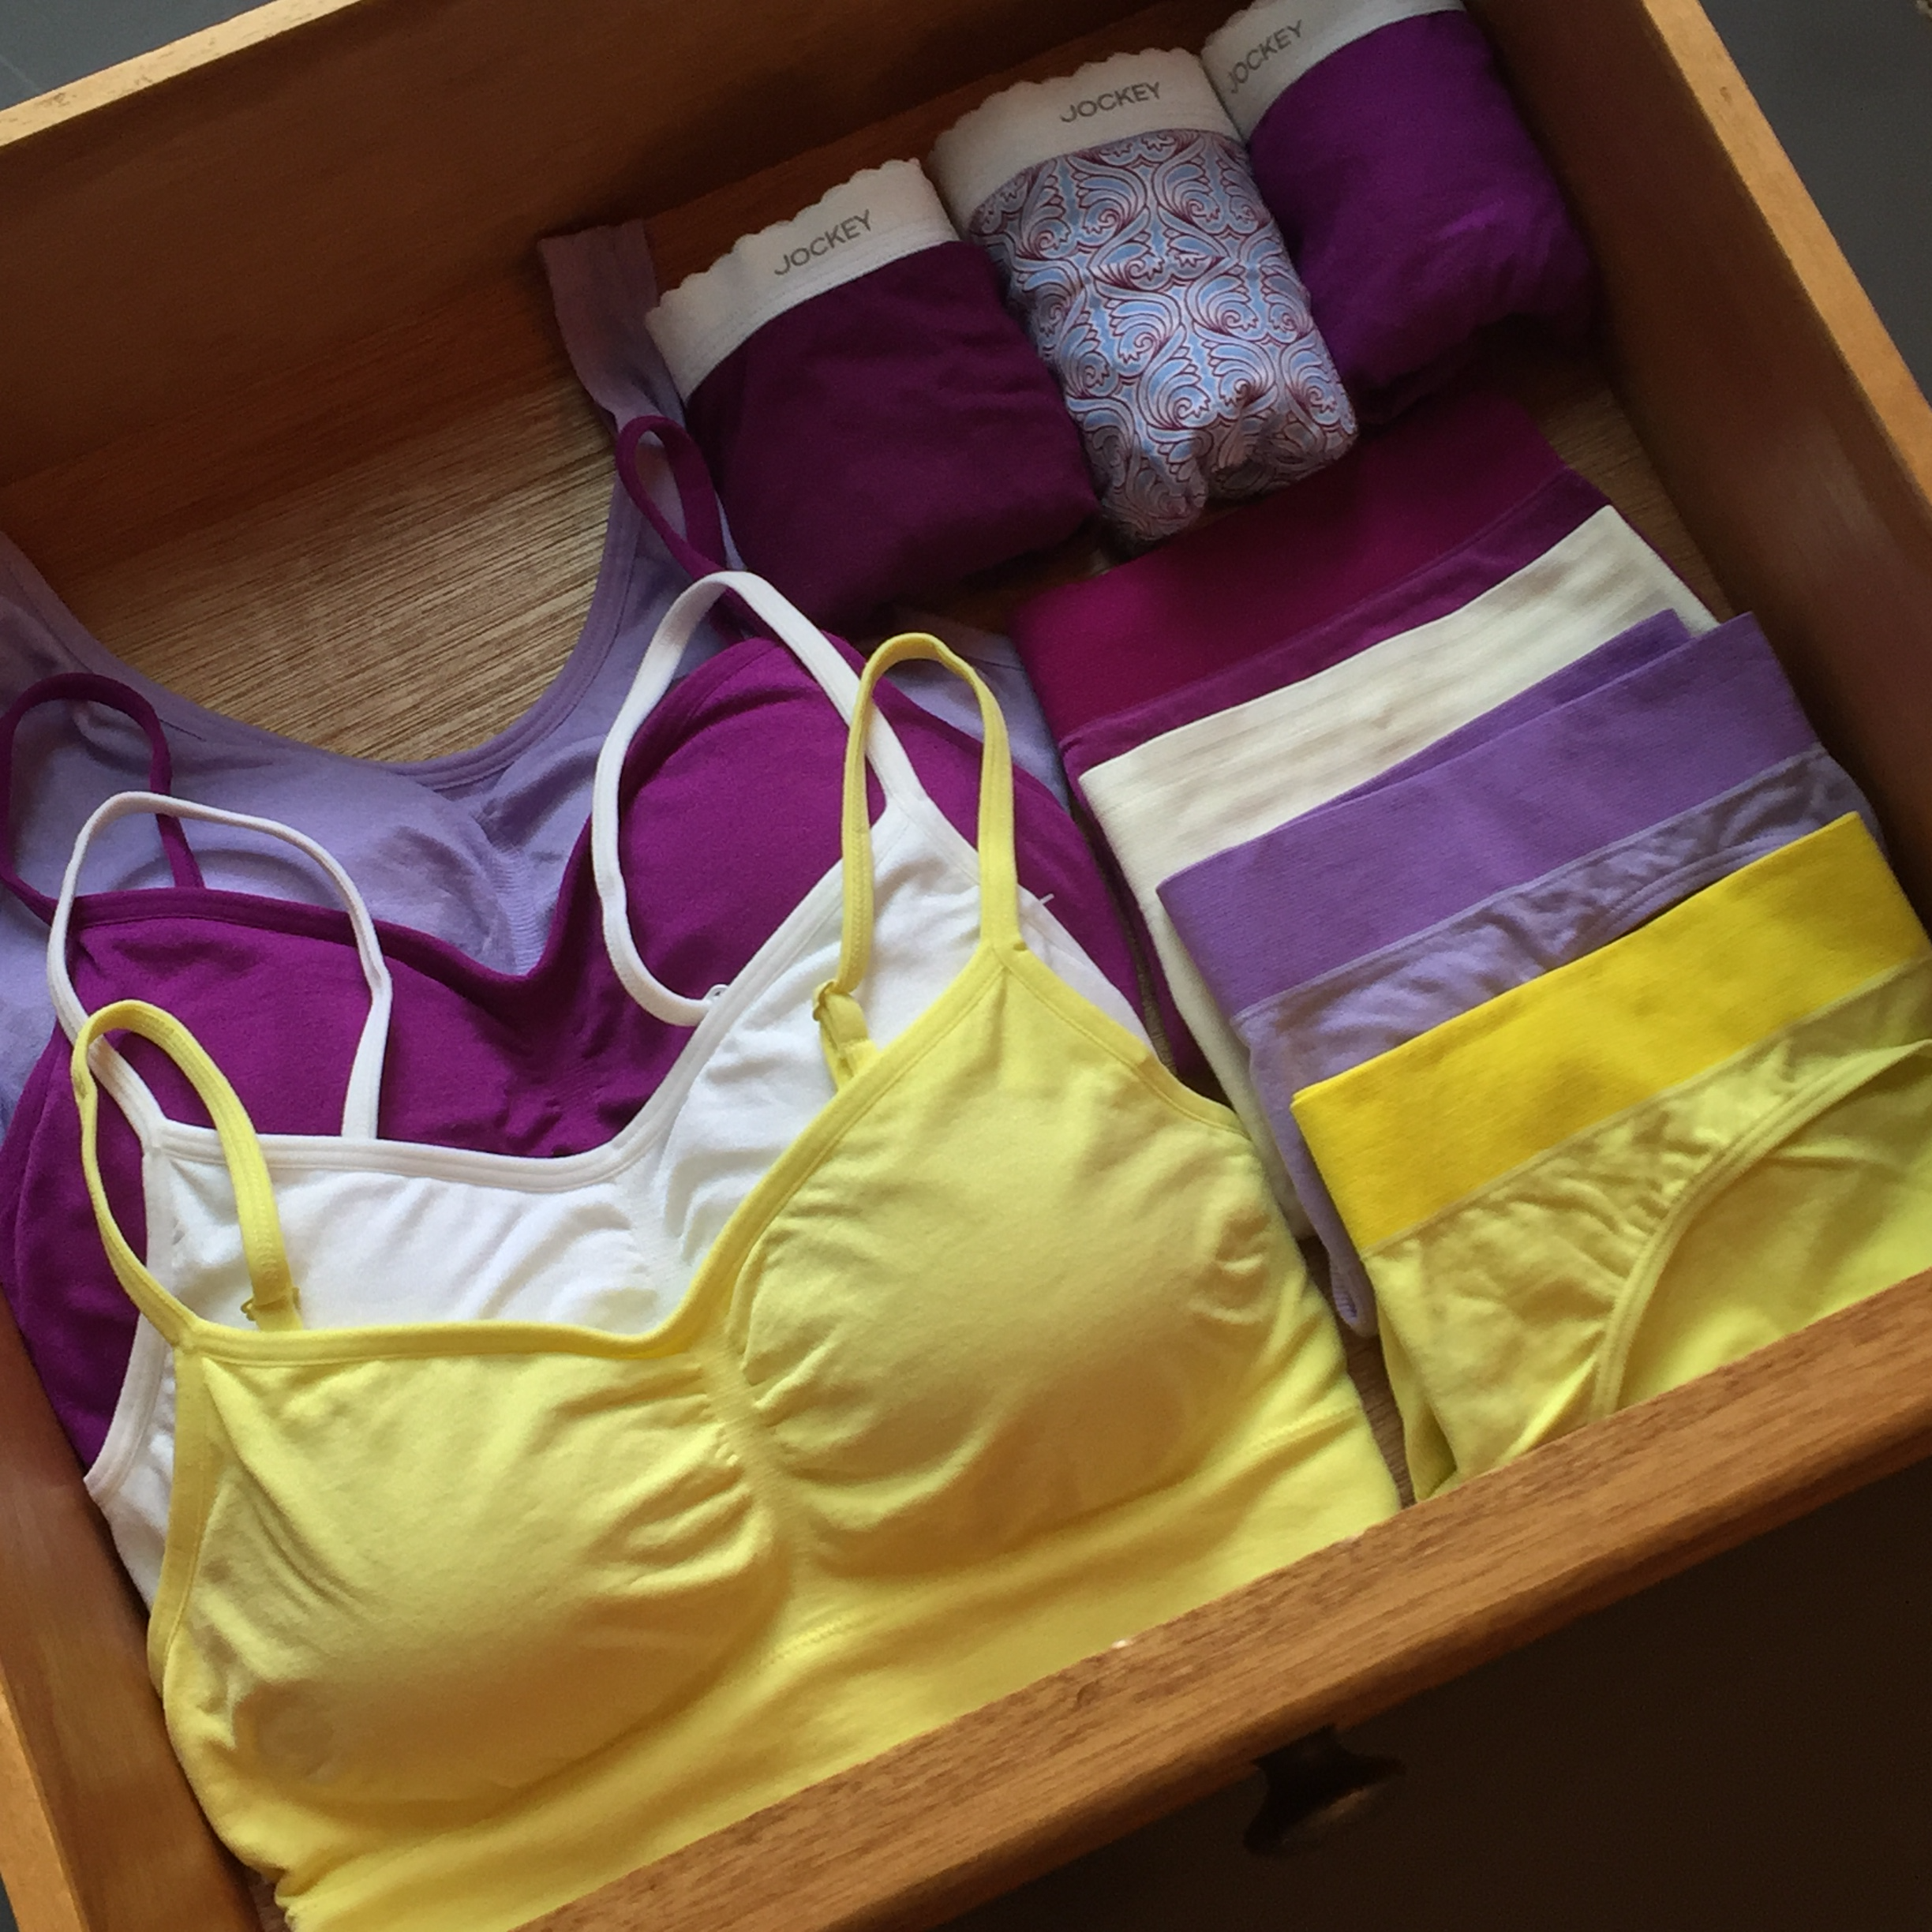 Sports bras and Womens underwear folded in a drawer.